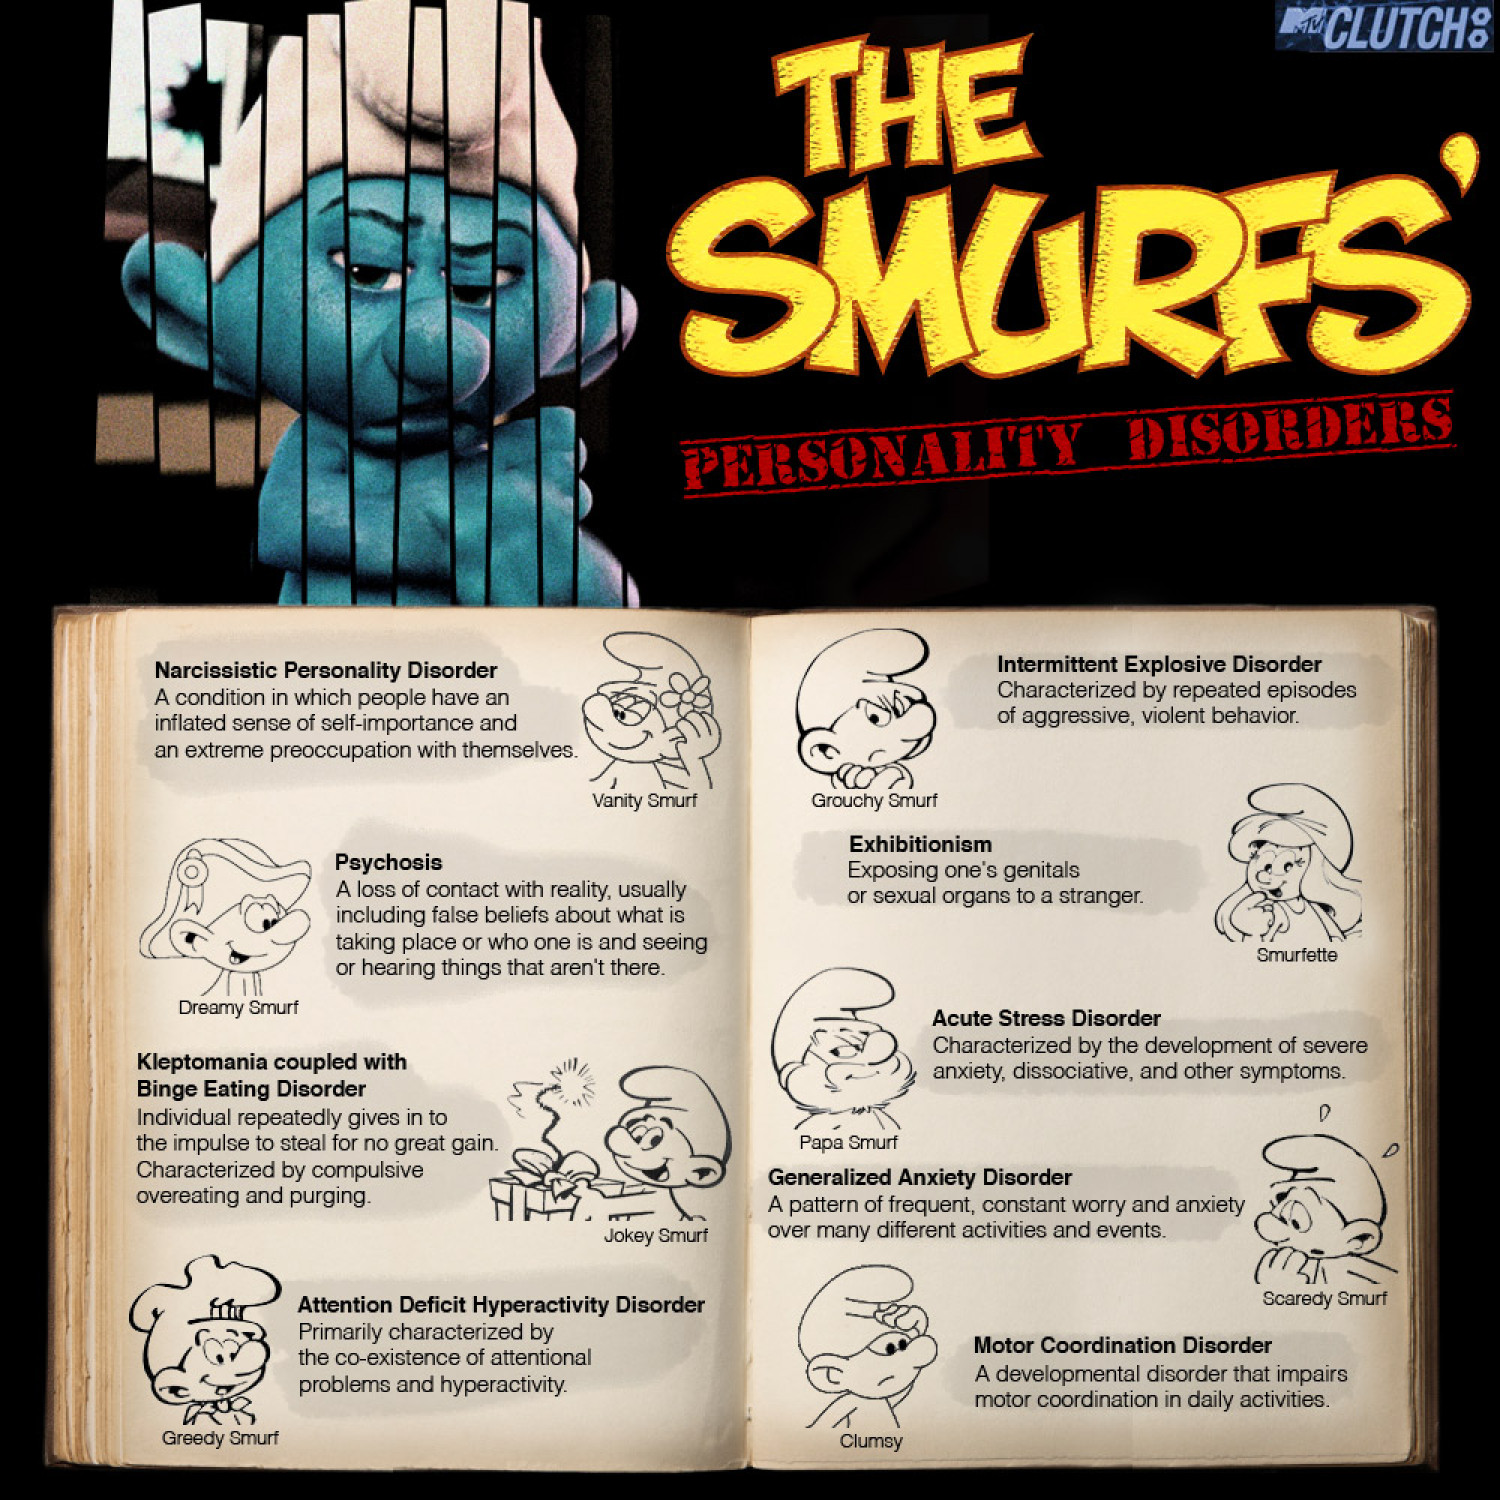 personality disorders smurfs infographic visual smurf disorder names funny adjectives mental visually embed narcissistic